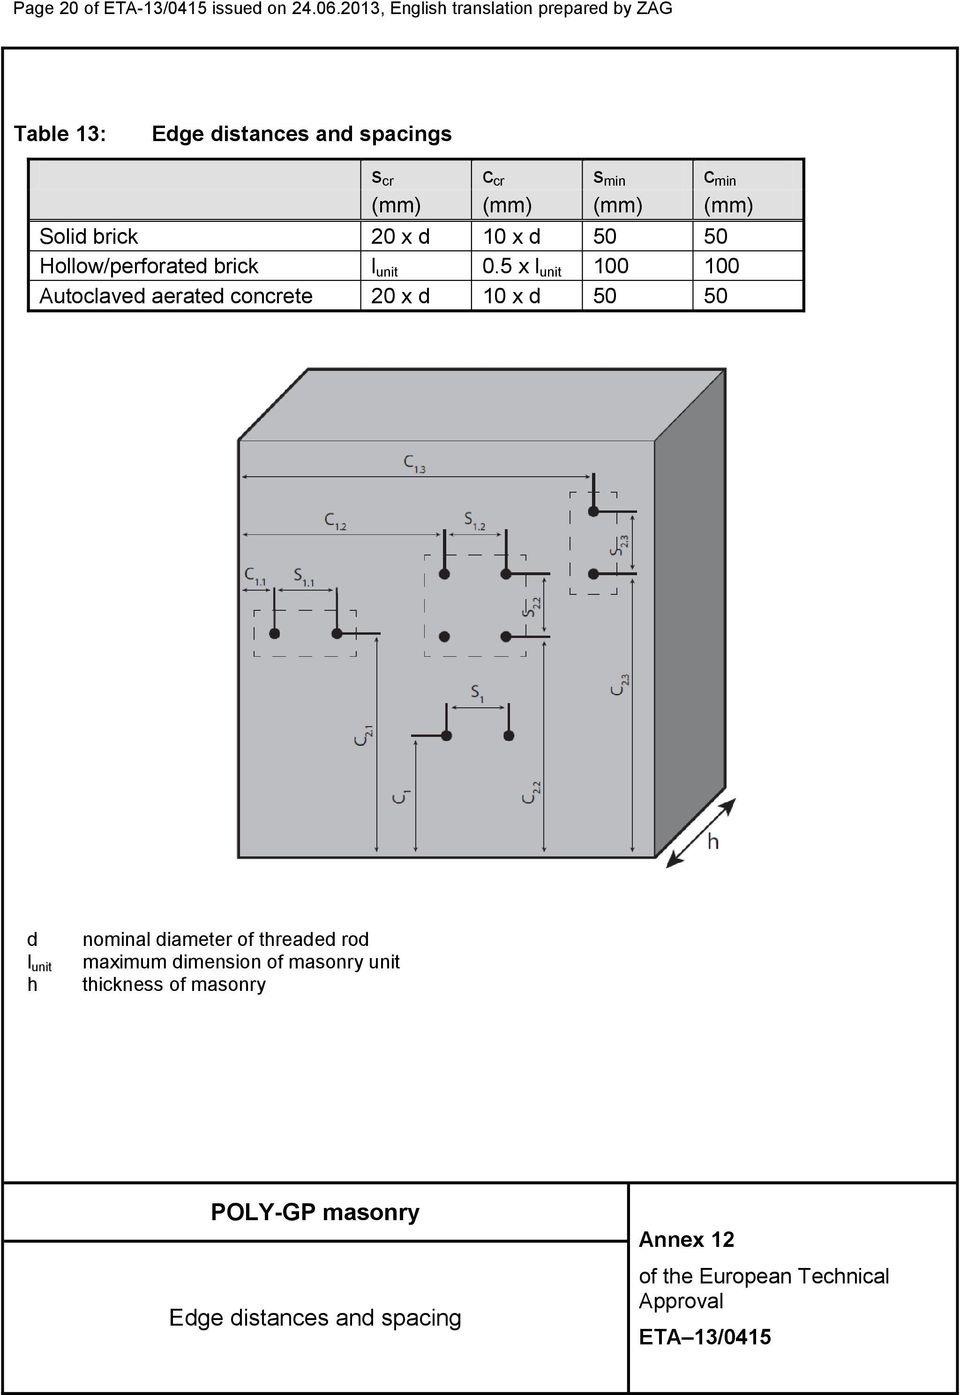 (mm) (mm) (mm) Solid brick 20 x d 10 x d 50 50 Hollow/perforated brick l unit 0.